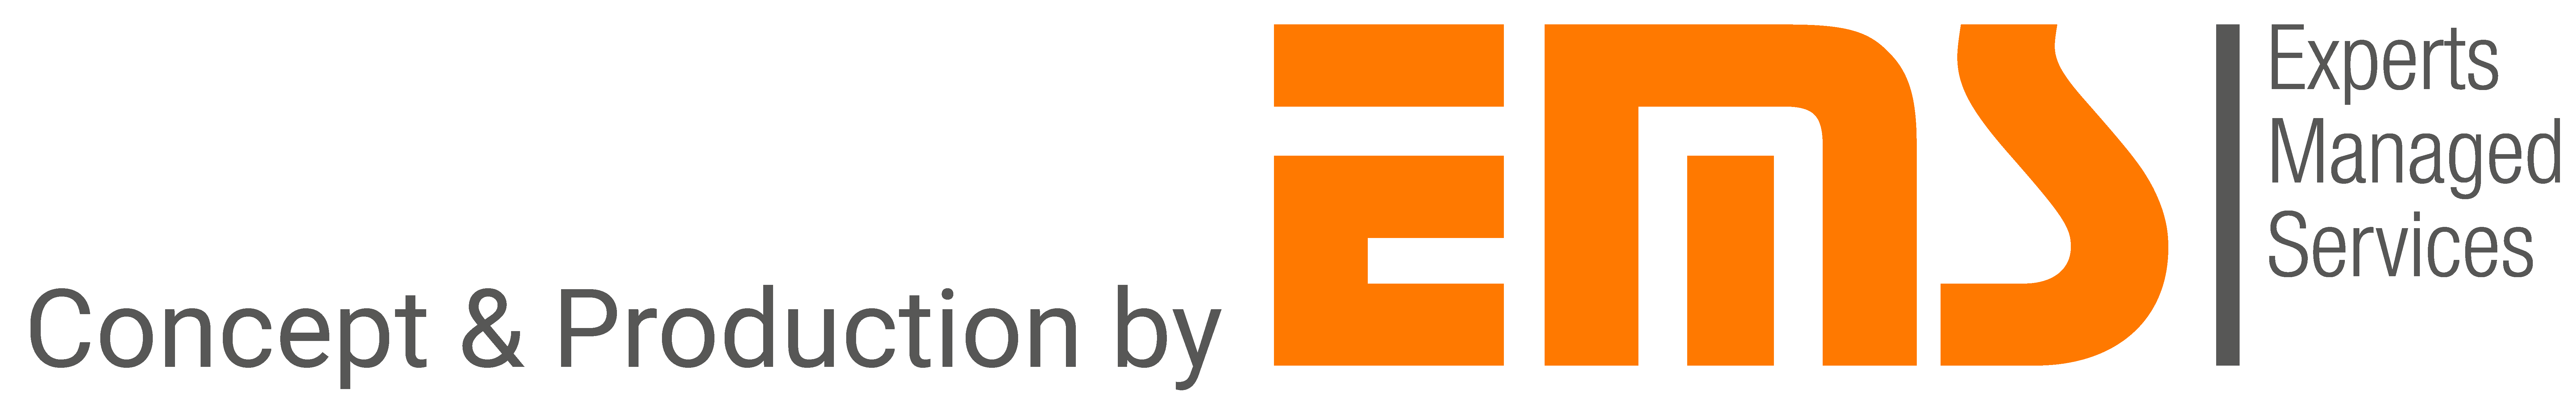 EMS | Experts Managed Services GmbH